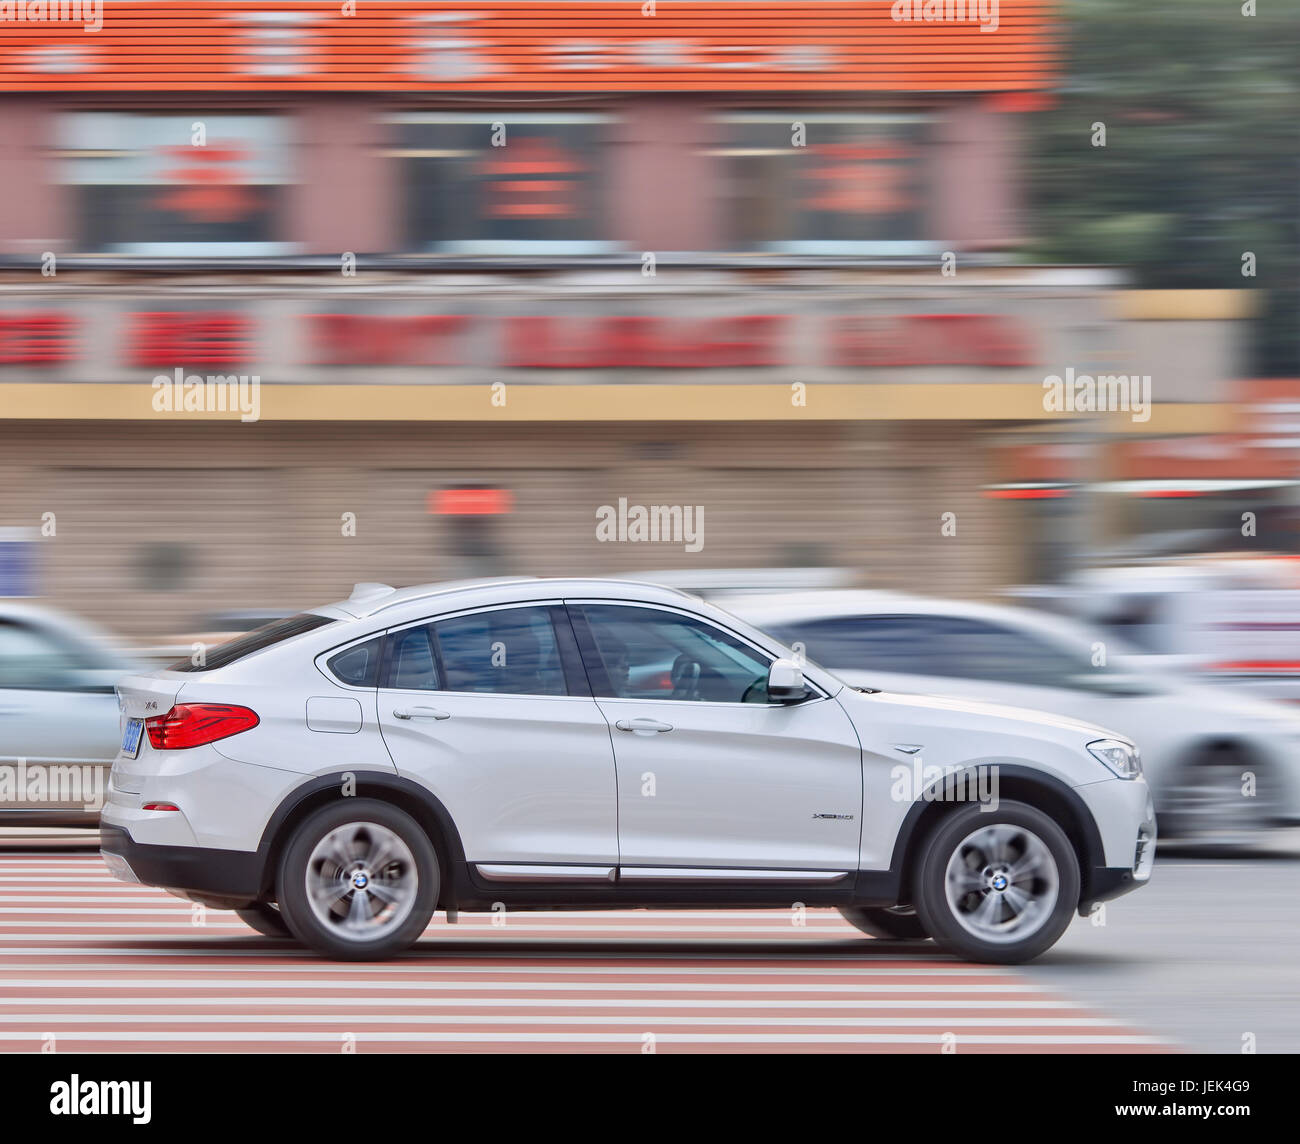 Bmw X7 Price In India: Bmw Suv Stock Photos & Bmw Suv Stock Images